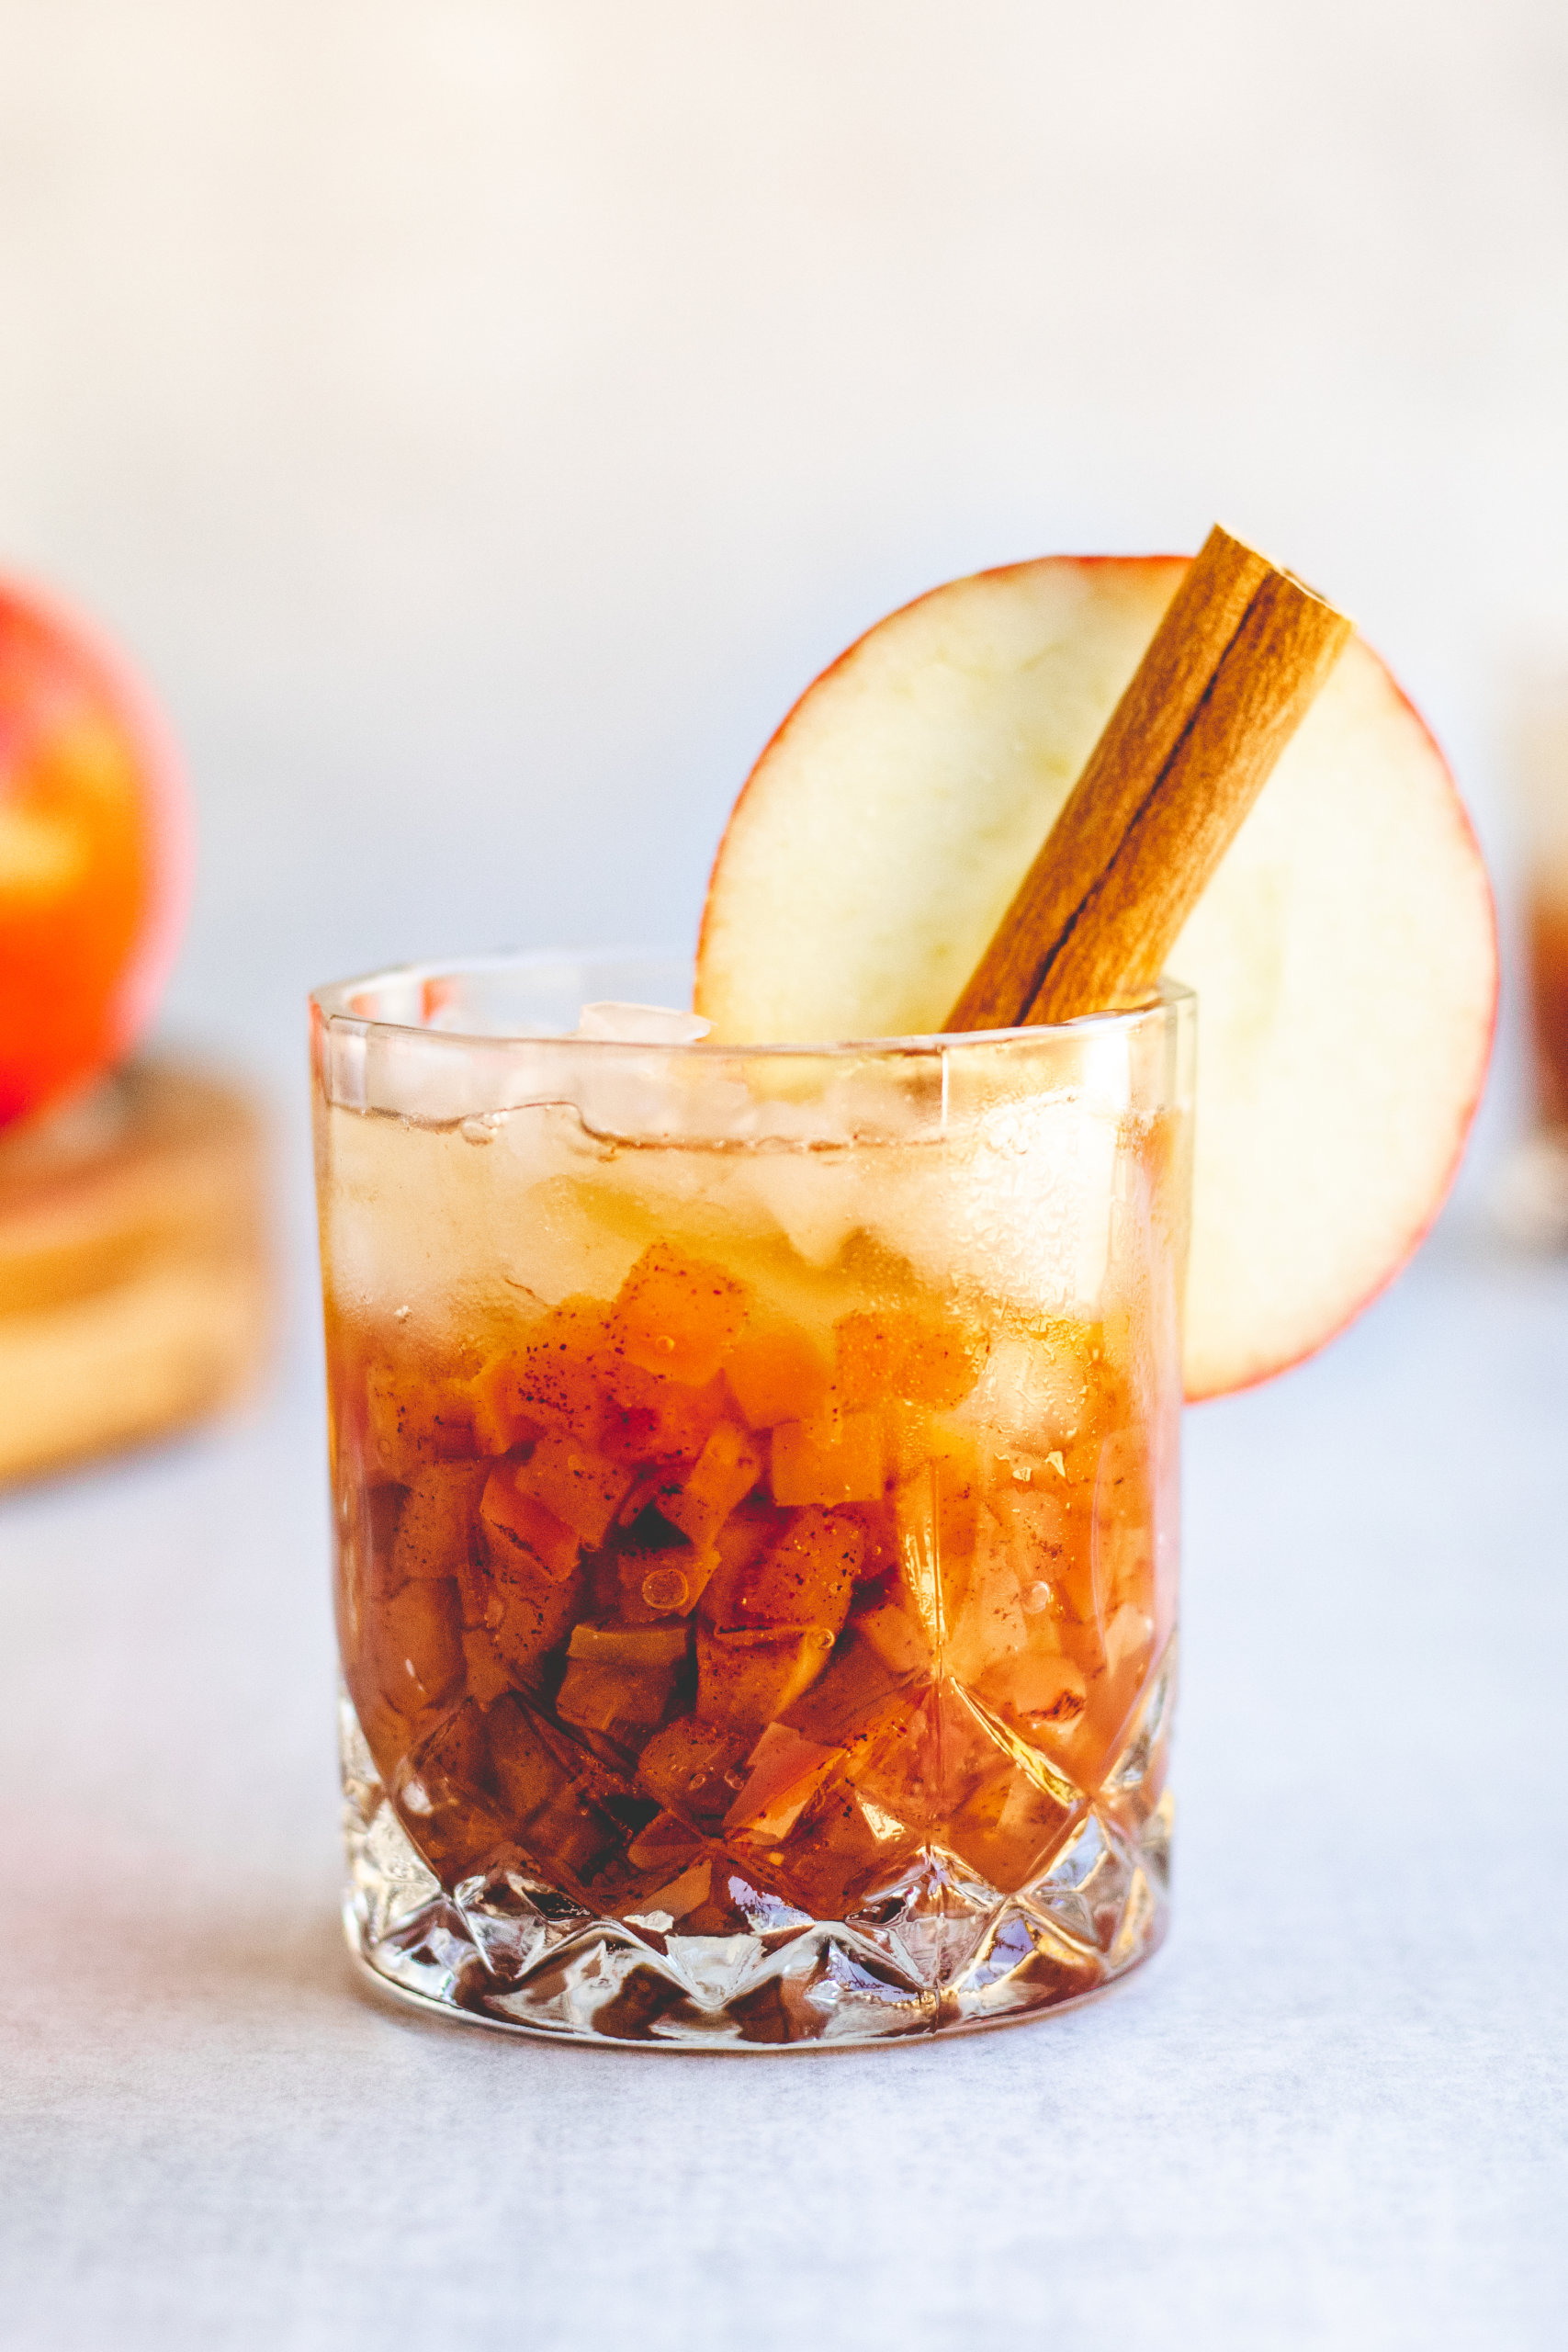 Apple Old Fashioned Cocktail Recipe